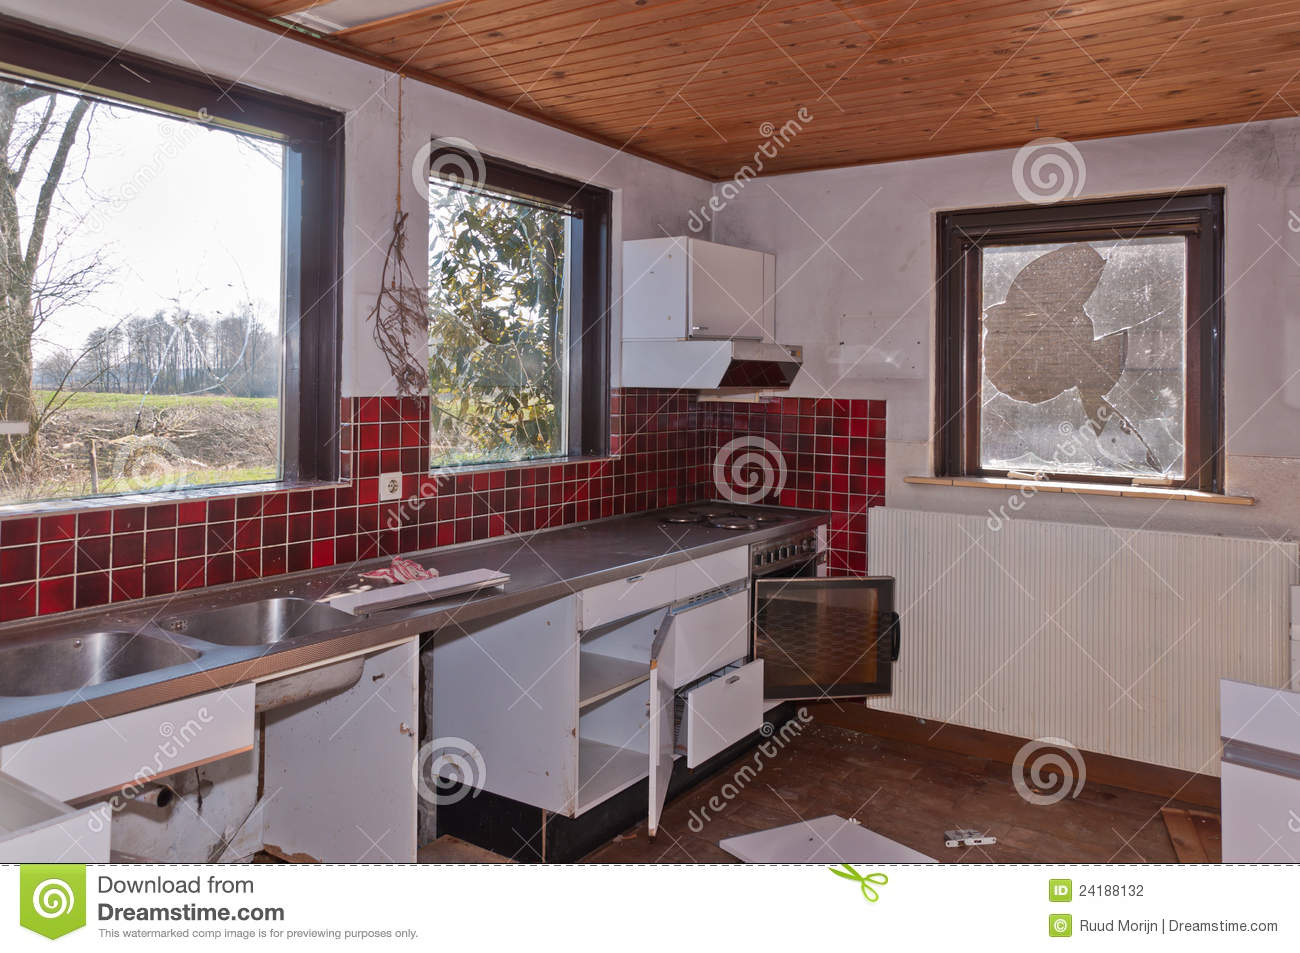 kitchen of an old dutch farm partly demolished stock photography image 24188132. Black Bedroom Furniture Sets. Home Design Ideas